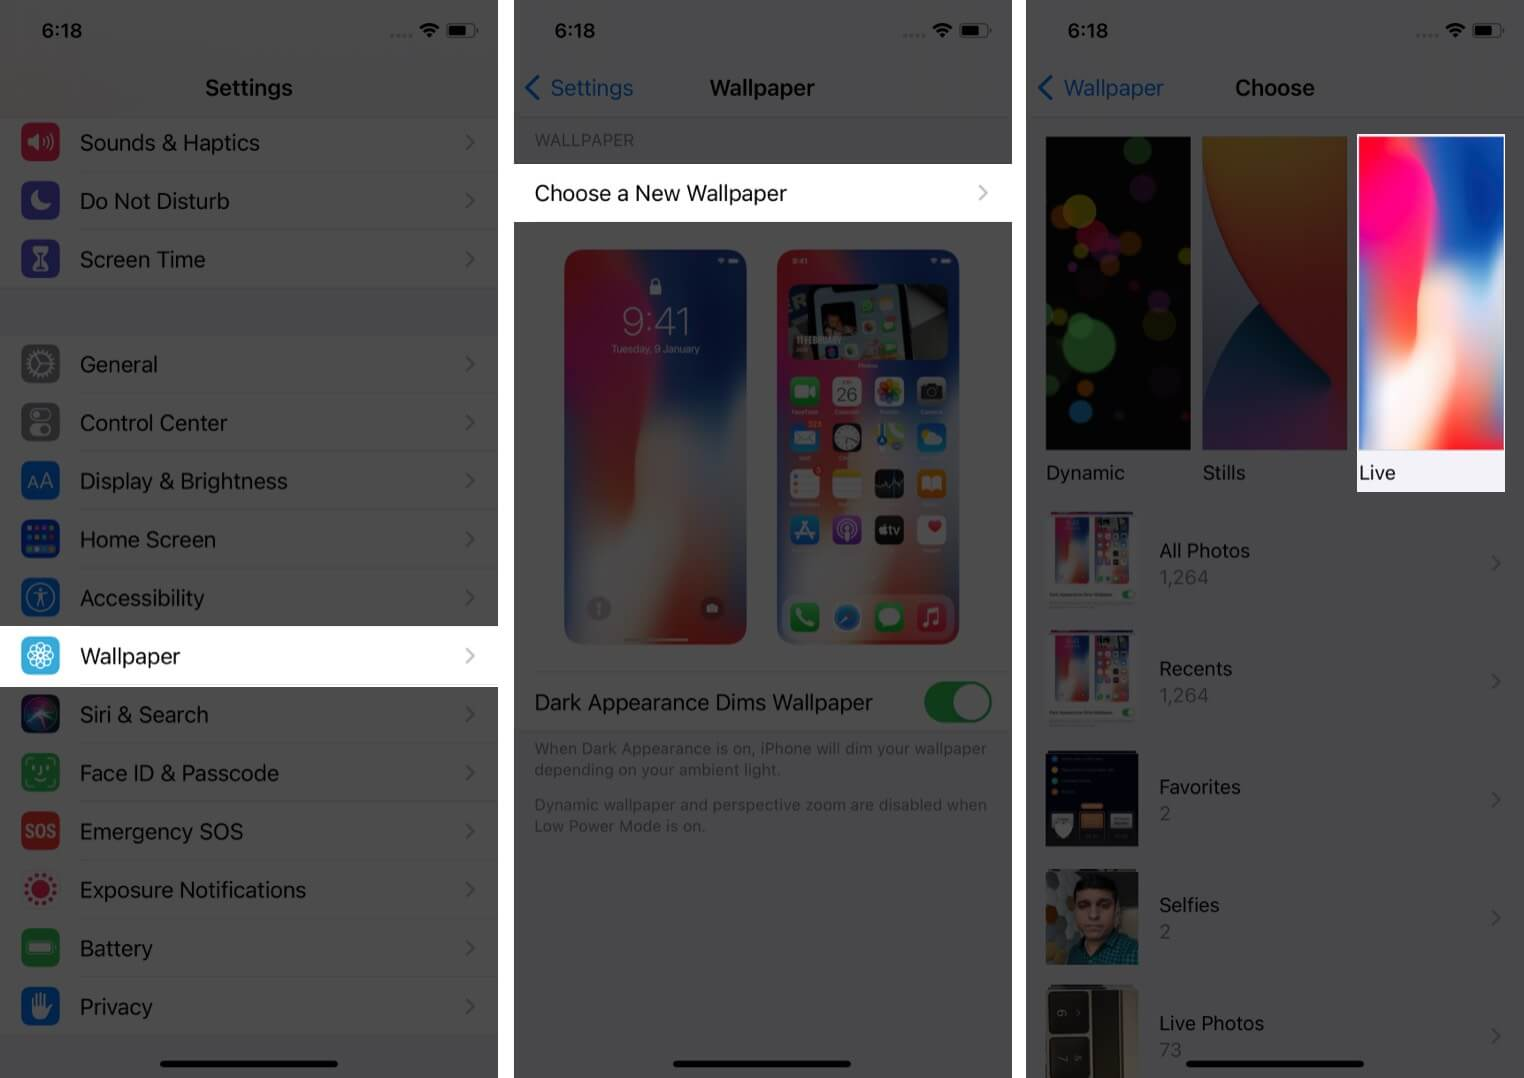 Go to Settings and select wallpaper on iPhone